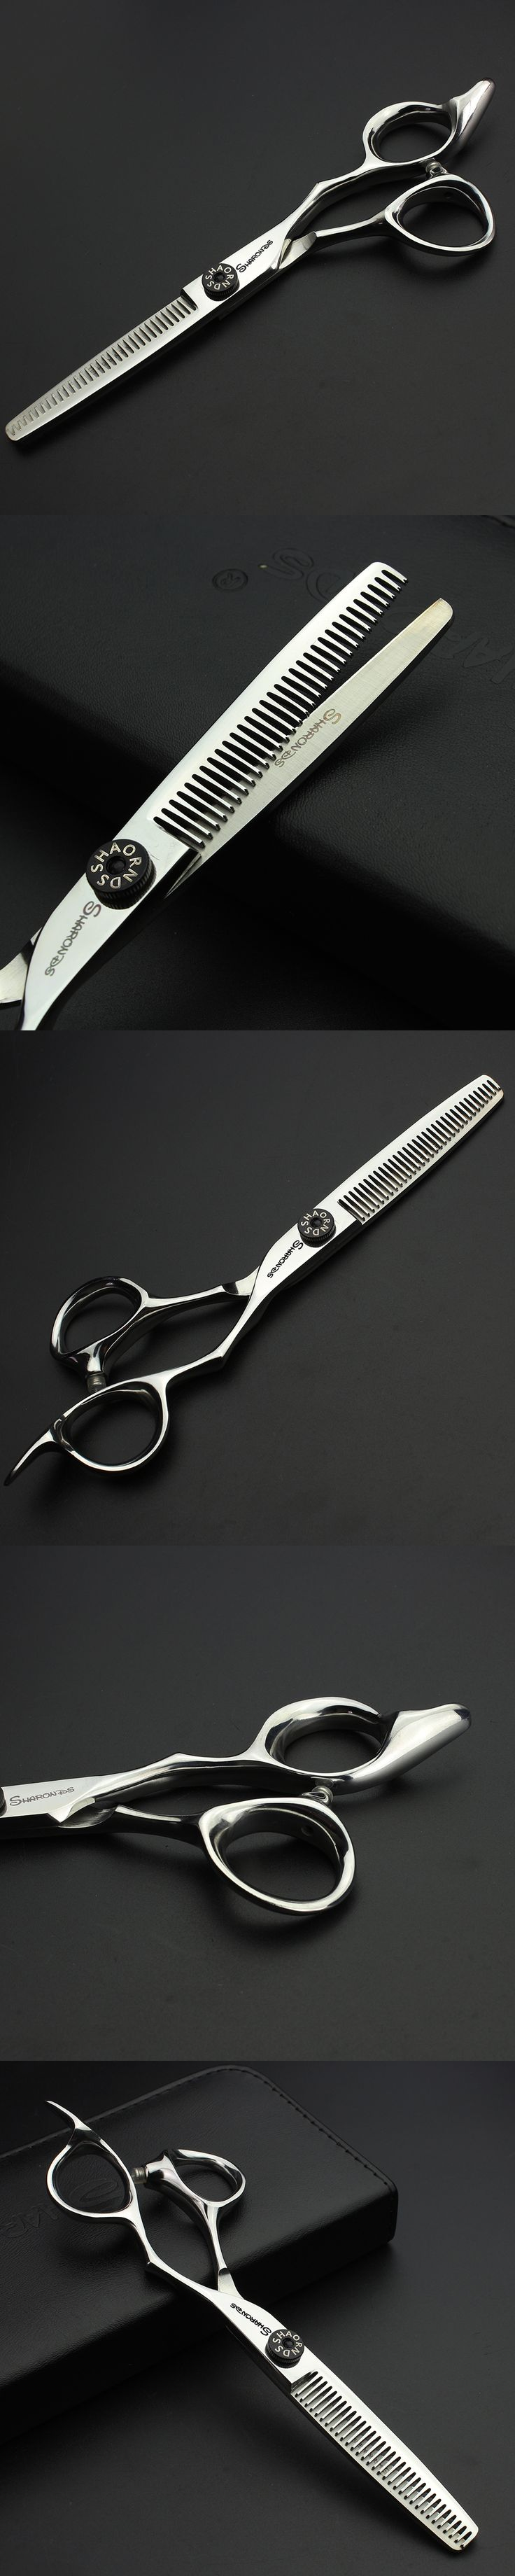 sharonds Professional hairdressing slimming scissors equipment Japanese silver 6 inch hairdressing scissors free shipping